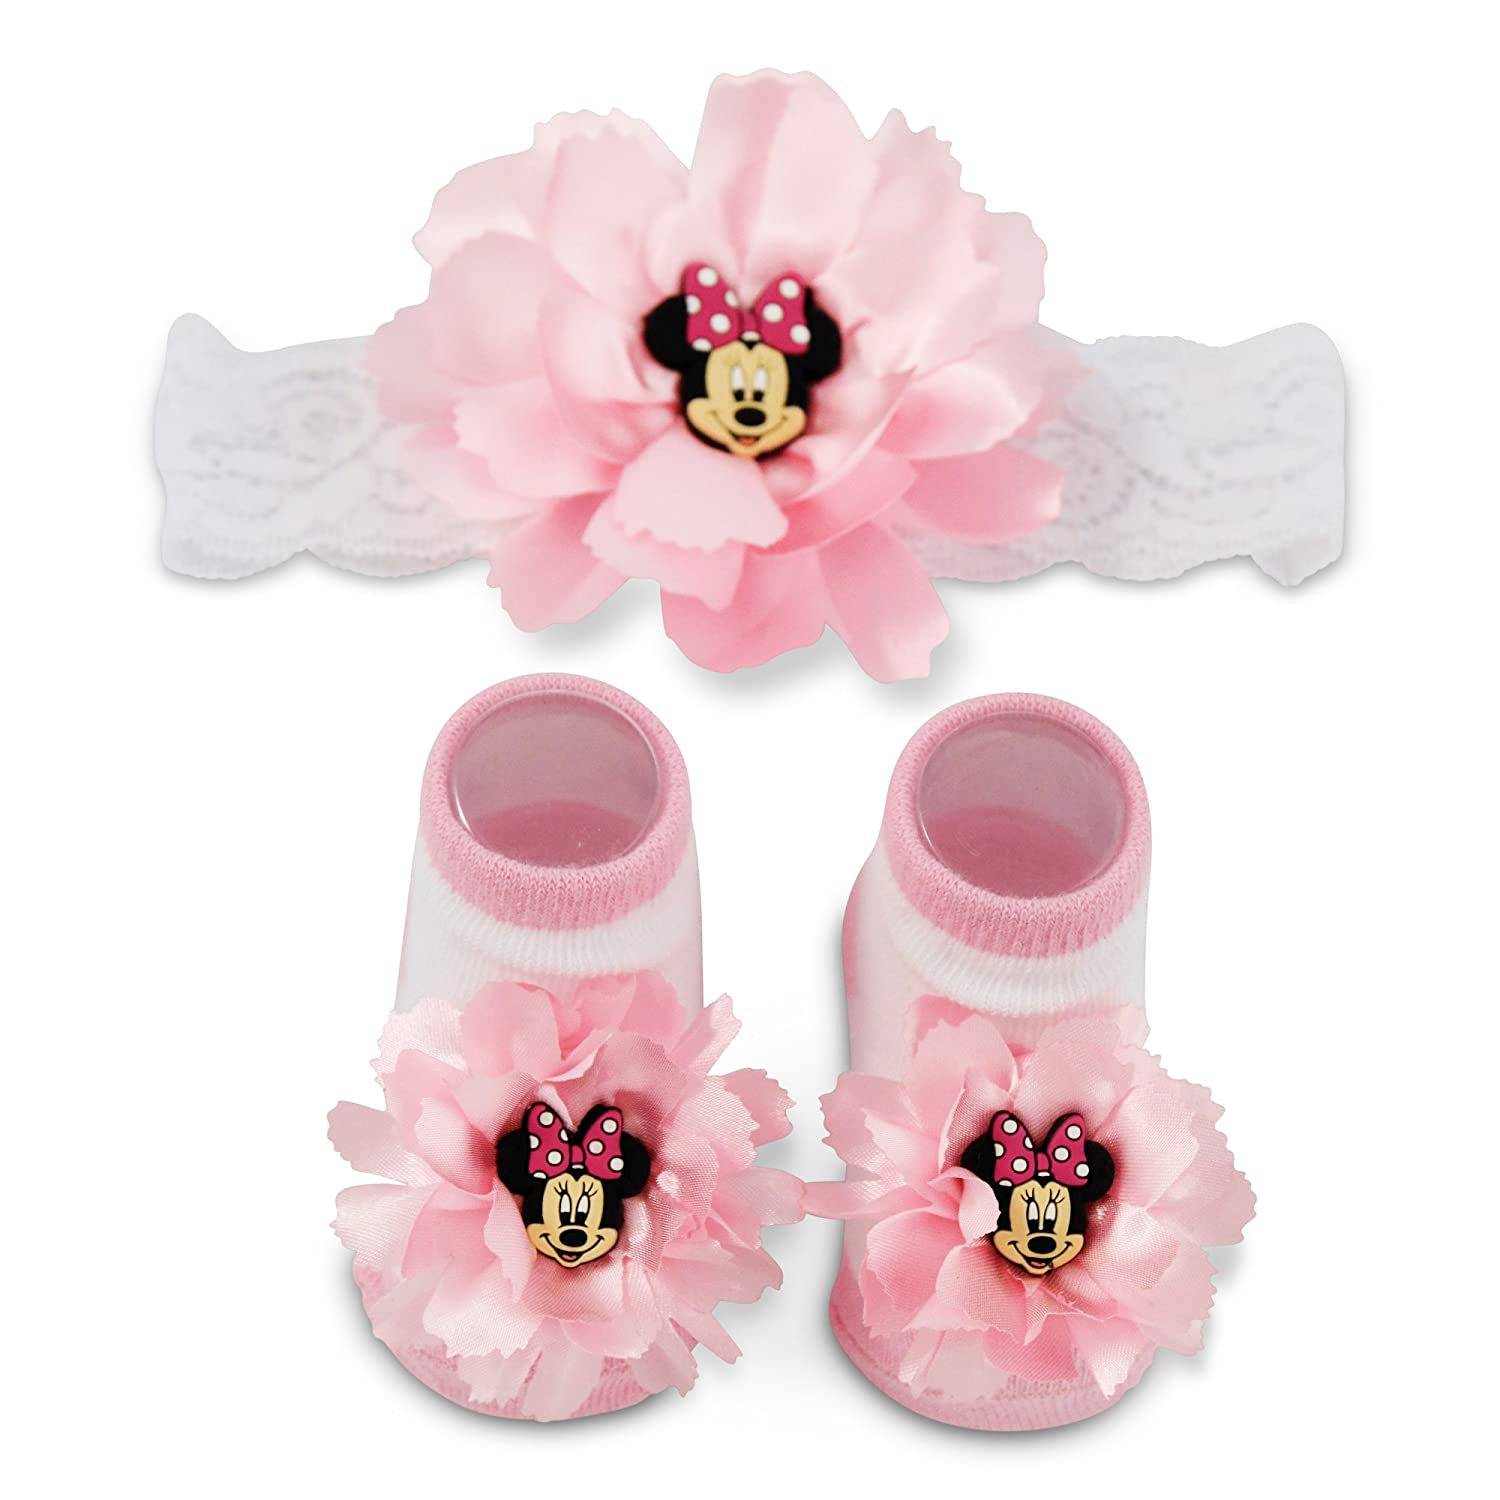 Disney Baby Girls' Minnie Mouse Polka Dot Flower Headwrap and Booties Gift Set pink white 0-12M INX61531AZ